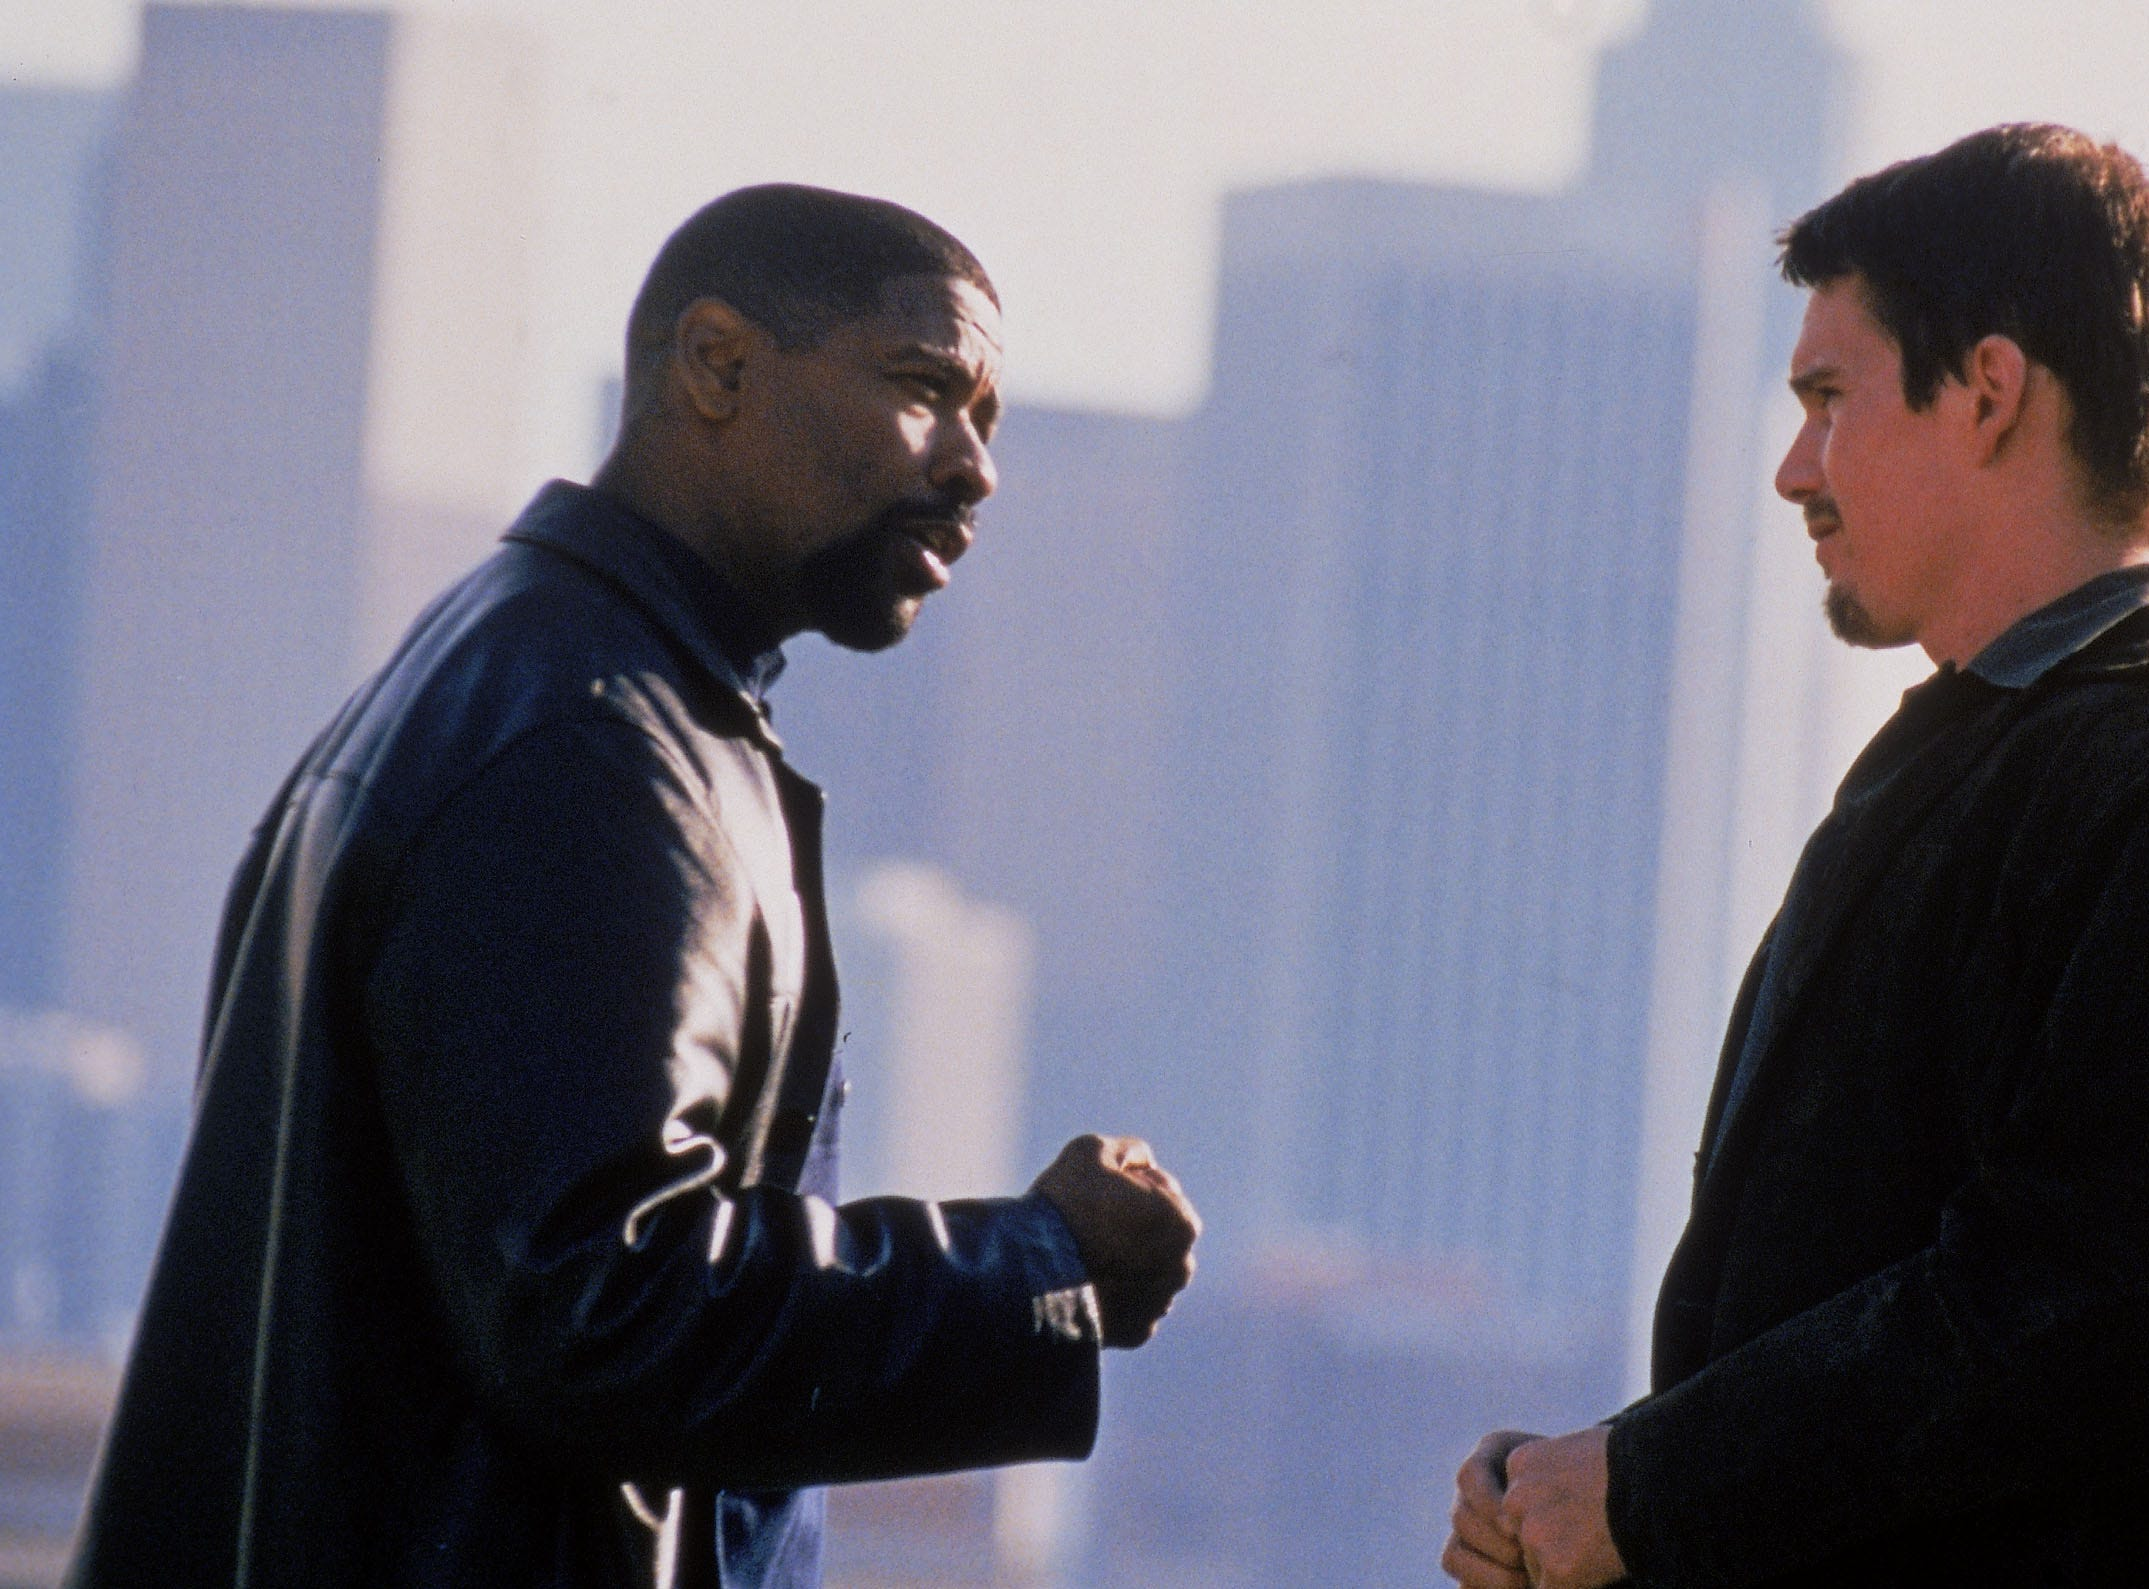 Denzel Washington, left, and Ethan Hawke in a scene from the motion picture 'Training Day.'